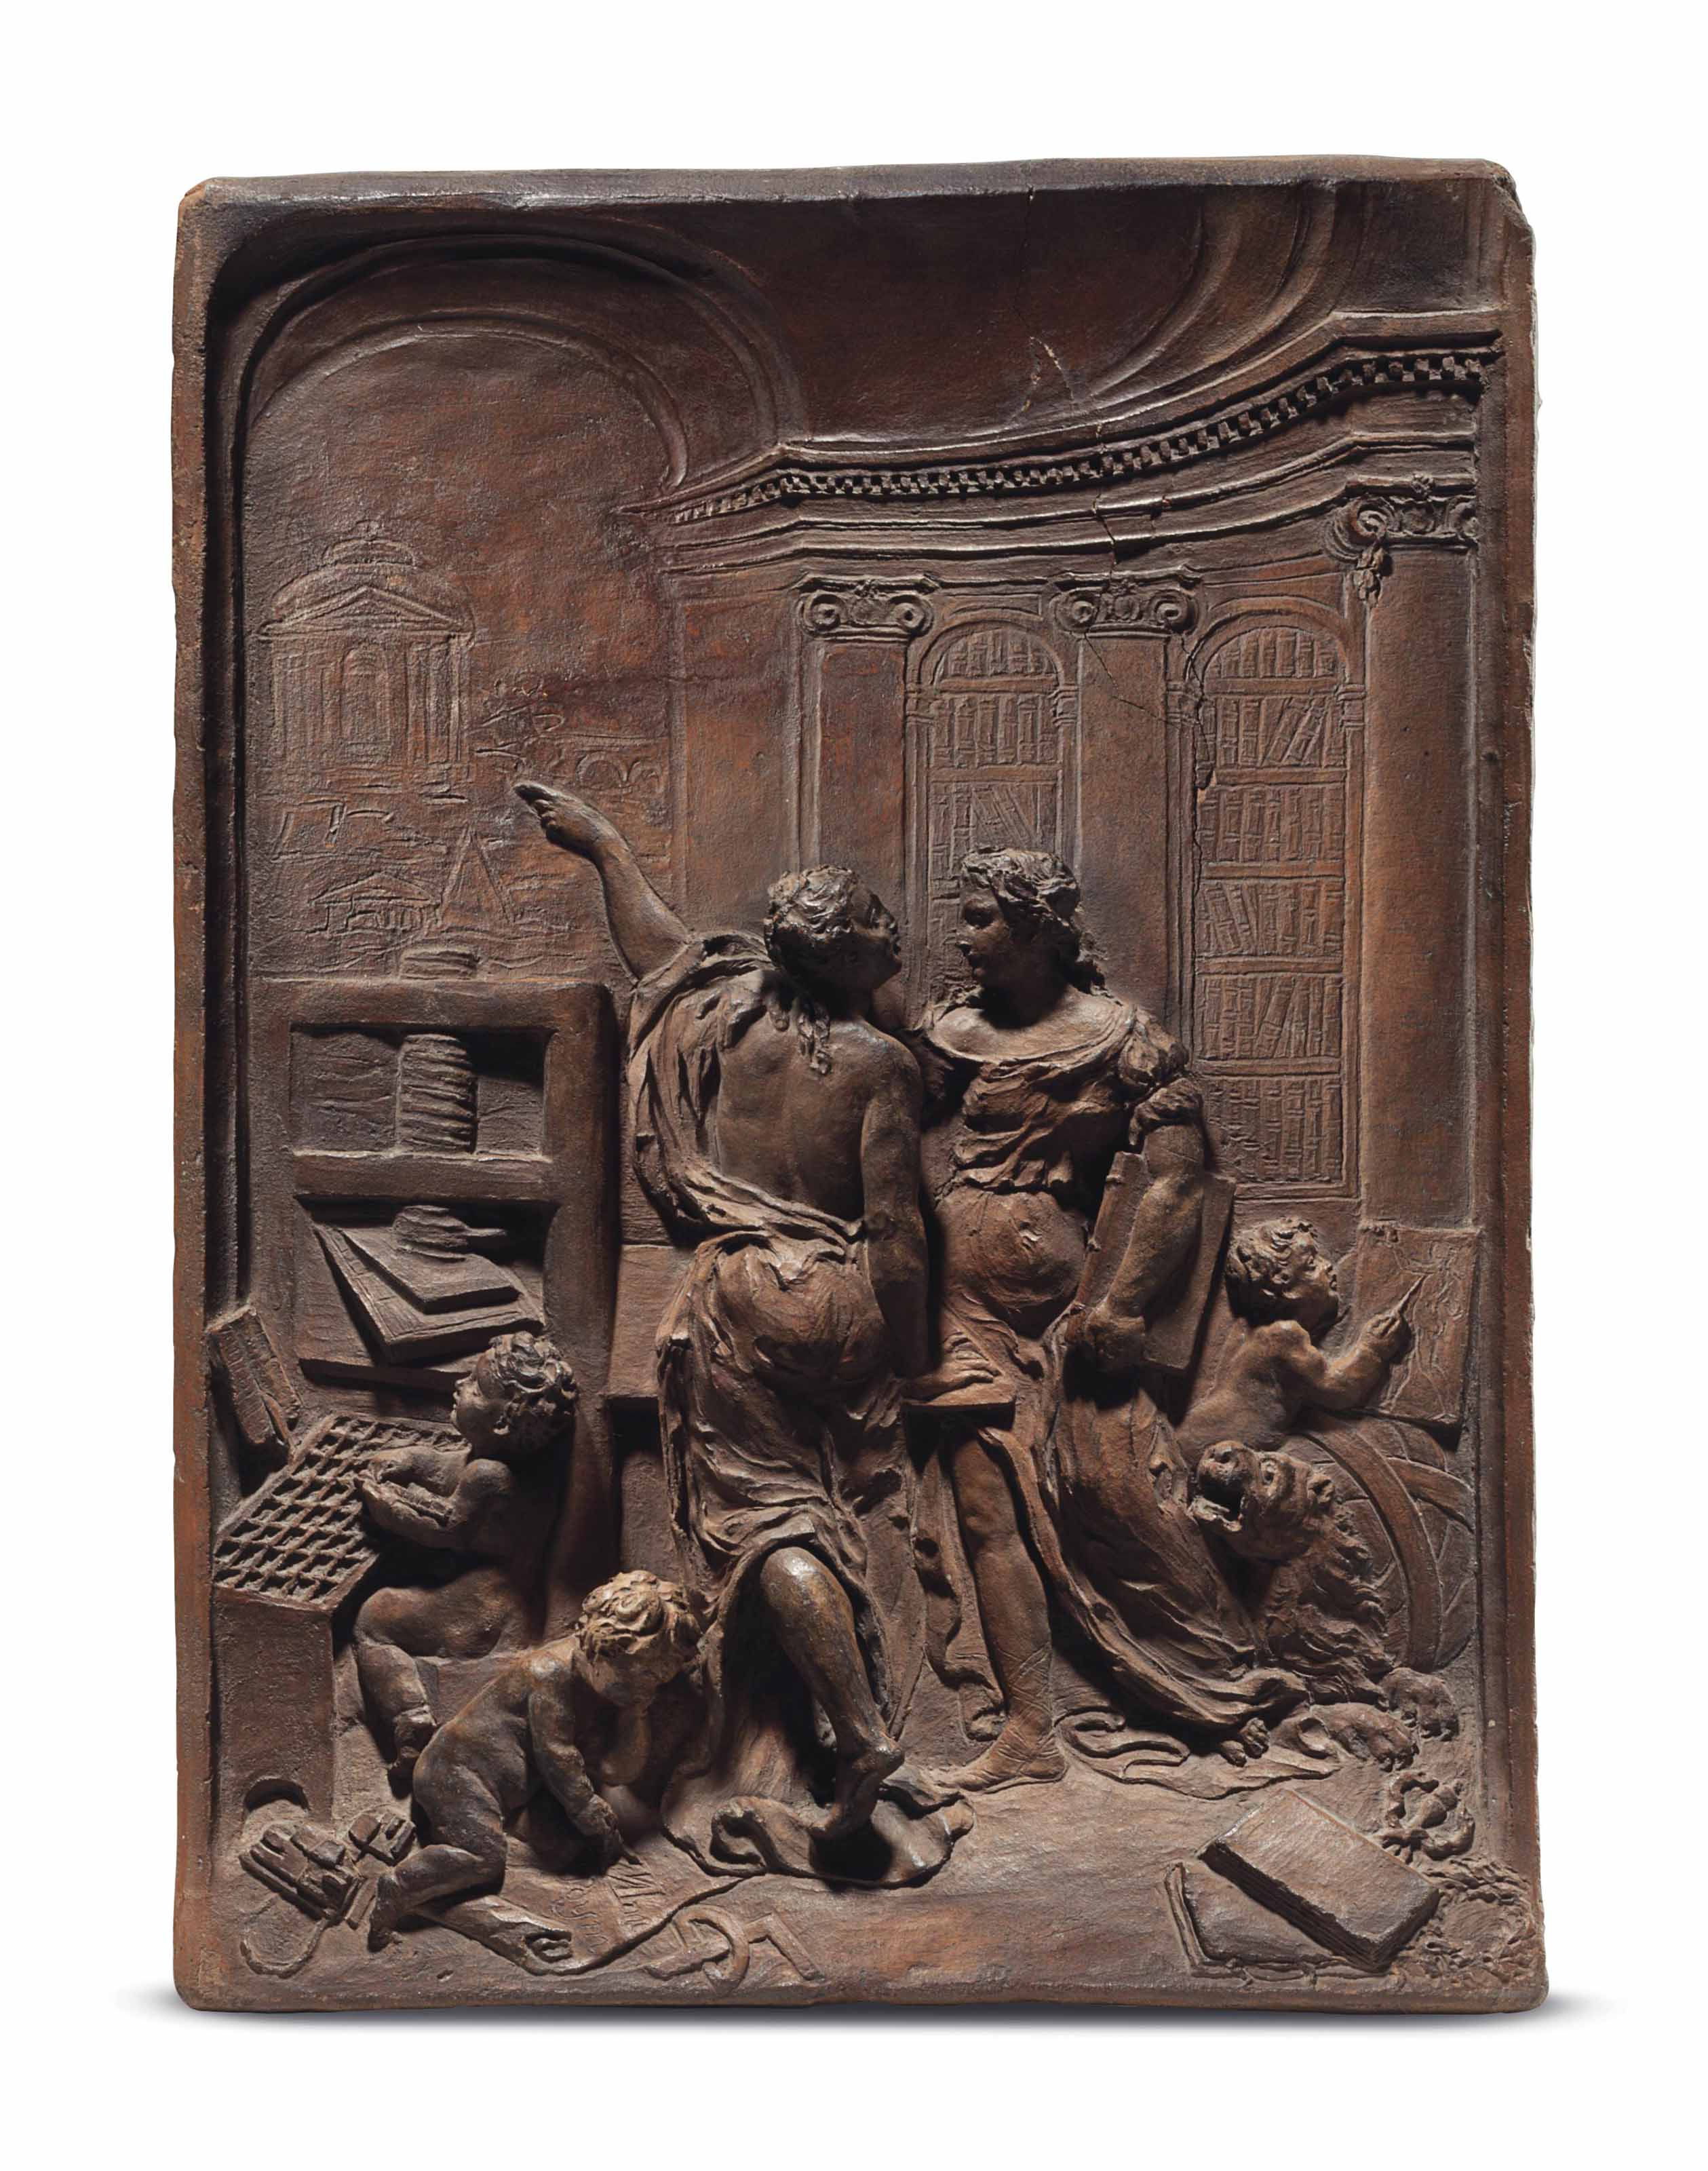 A TERRACOTTA RELIEF OF AN ALLE